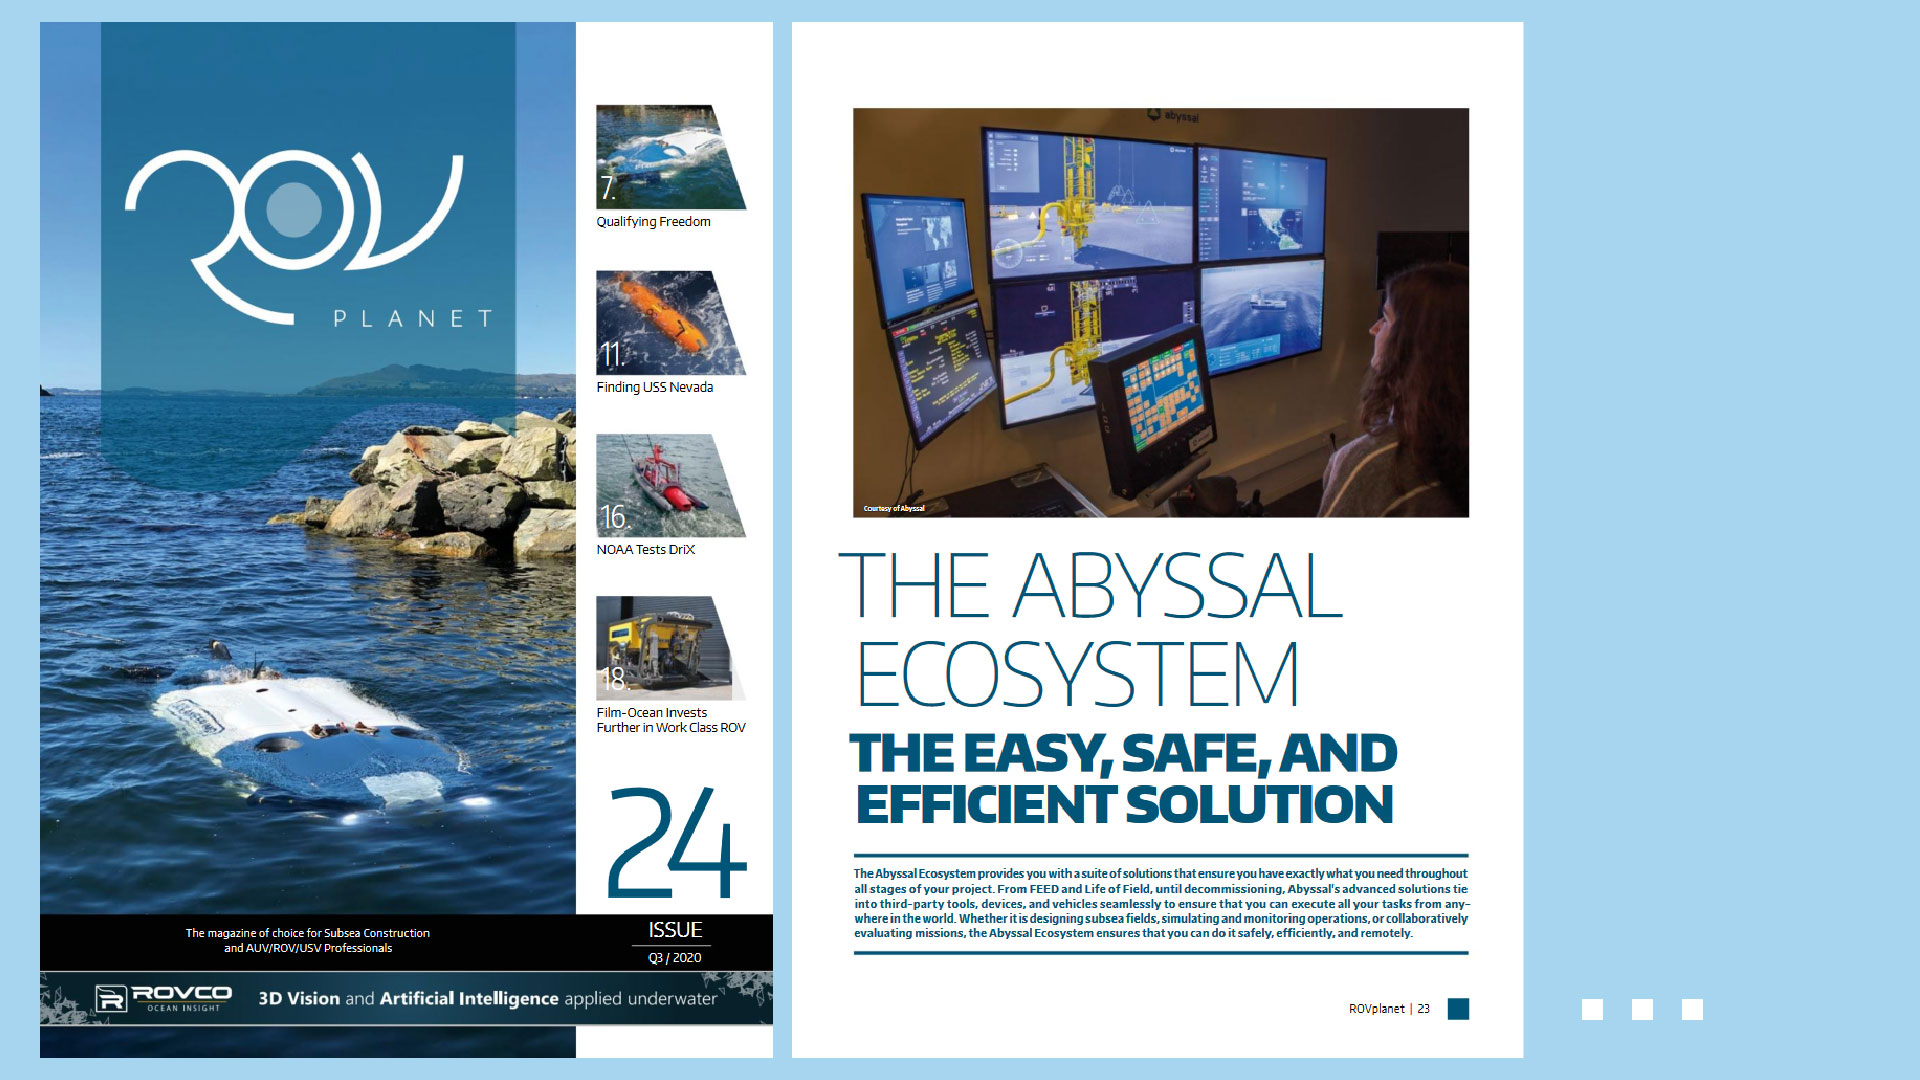 Abyssal featured in ROV Planet Magazine